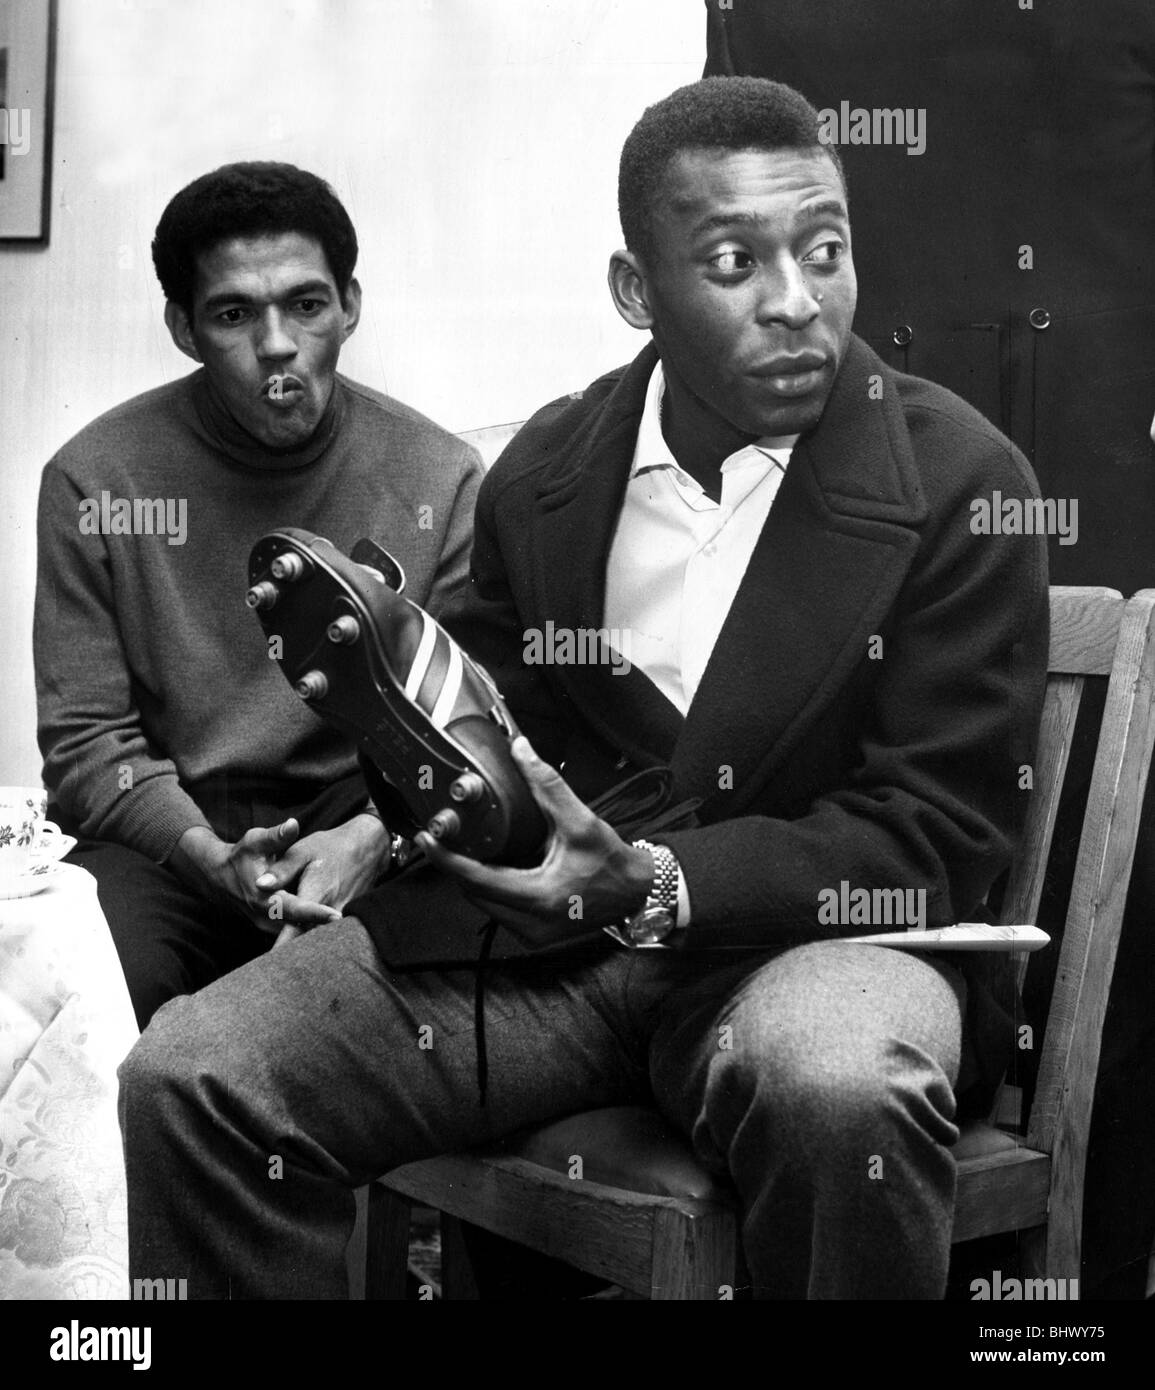 Brazilian football star Pele looking at a pair of football boots